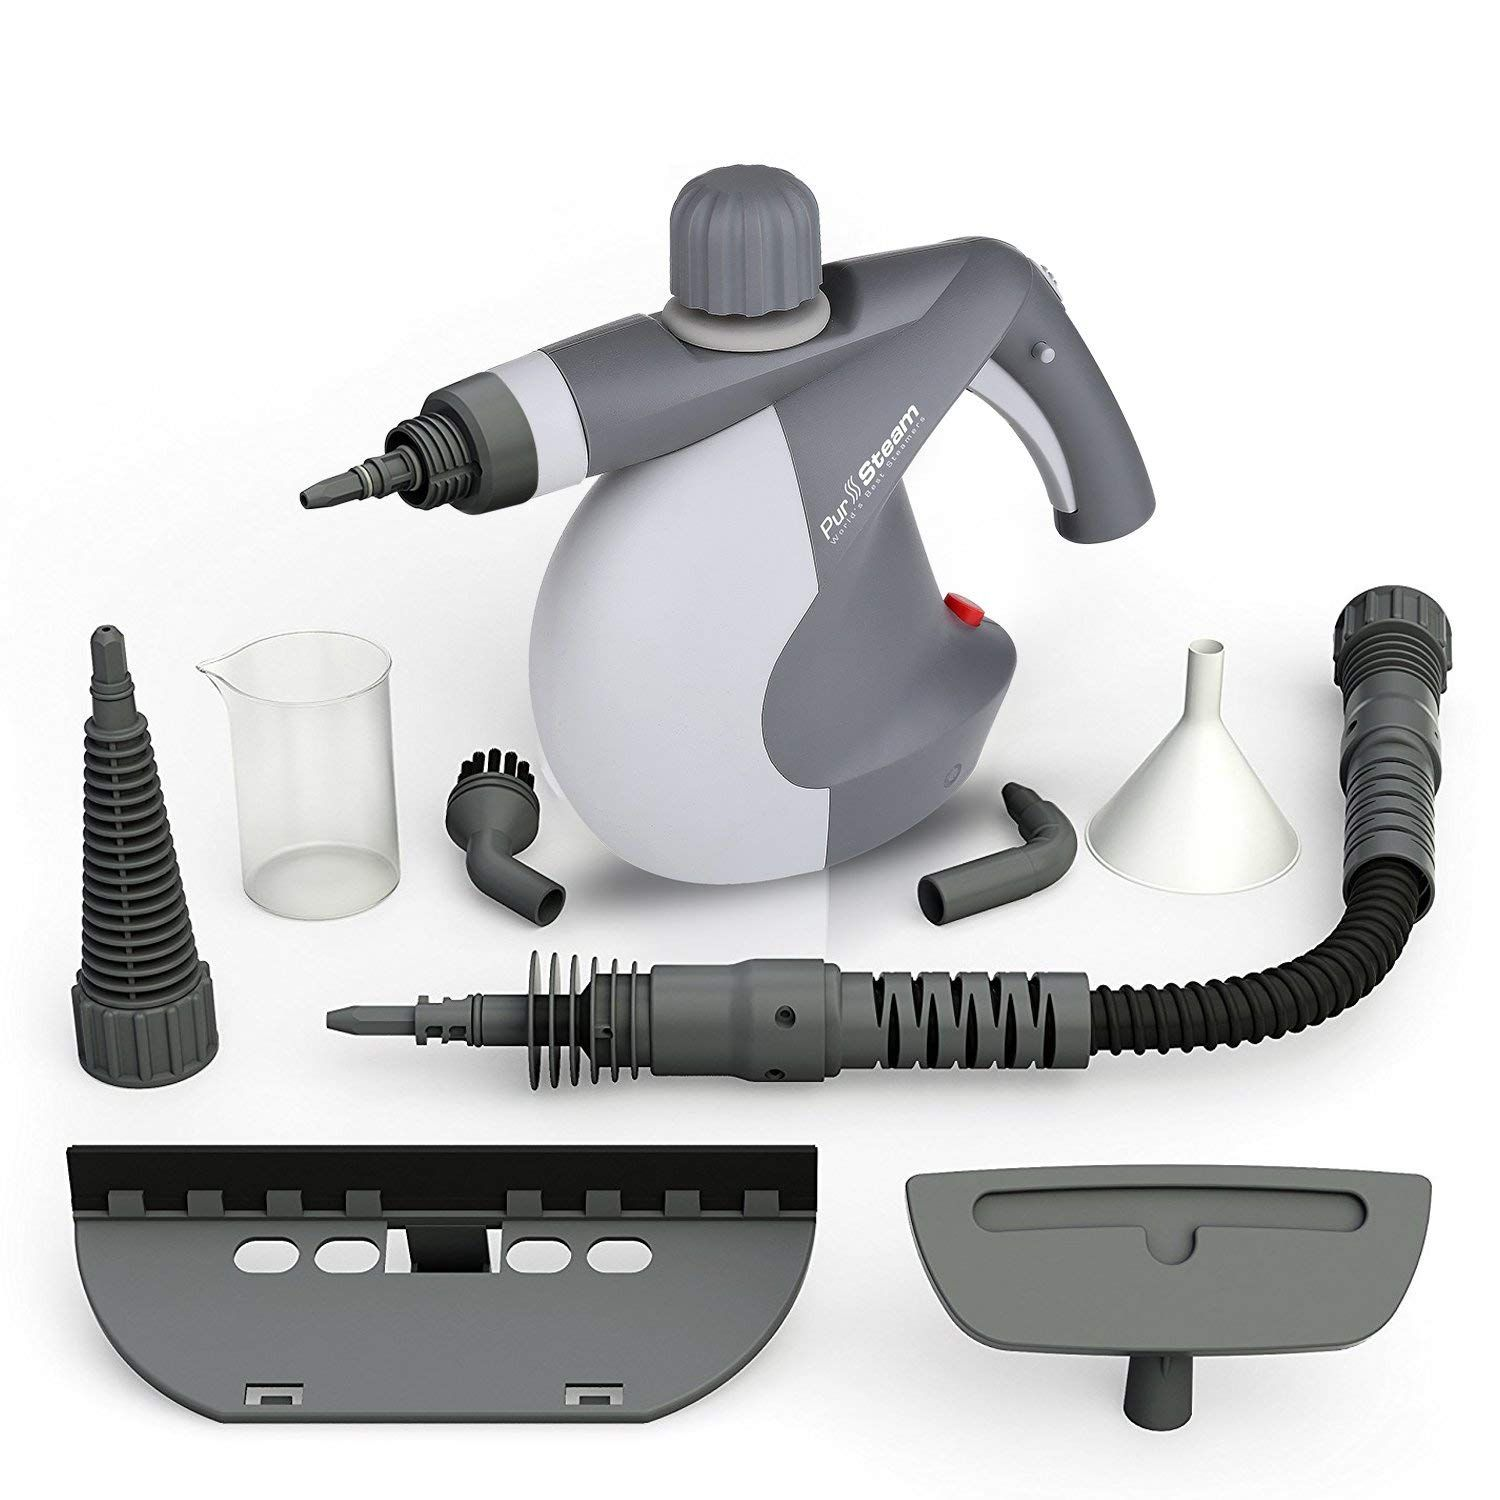 Portable Spot Cleaners Top 10 Best Review Bestreviewy Com Steam Cleaners Home Steam Cleaner Steam Cleaning